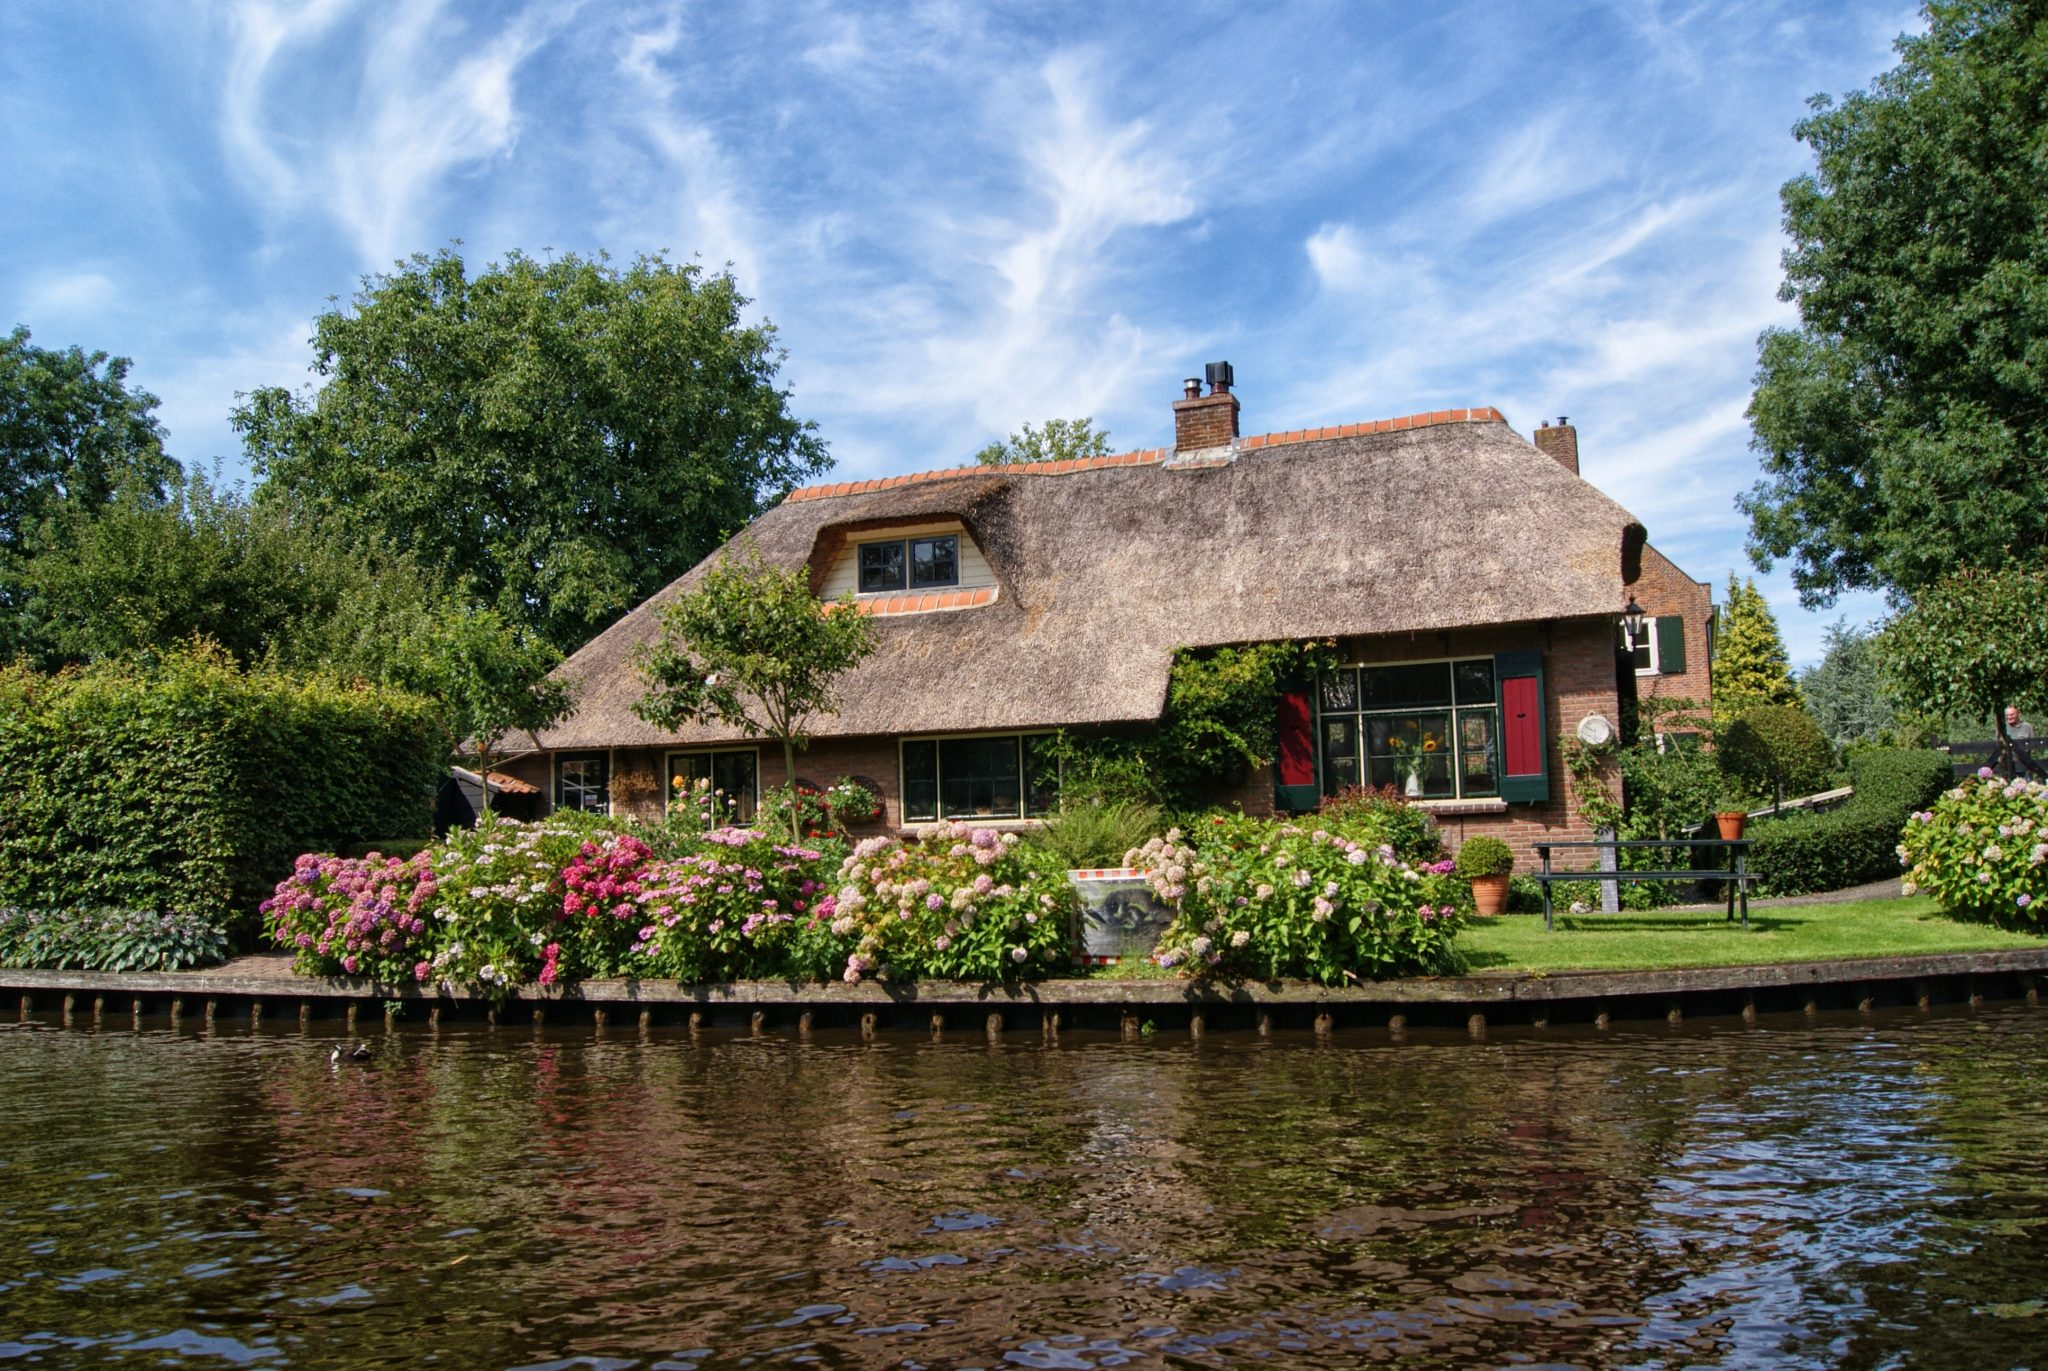 Cottage on a river